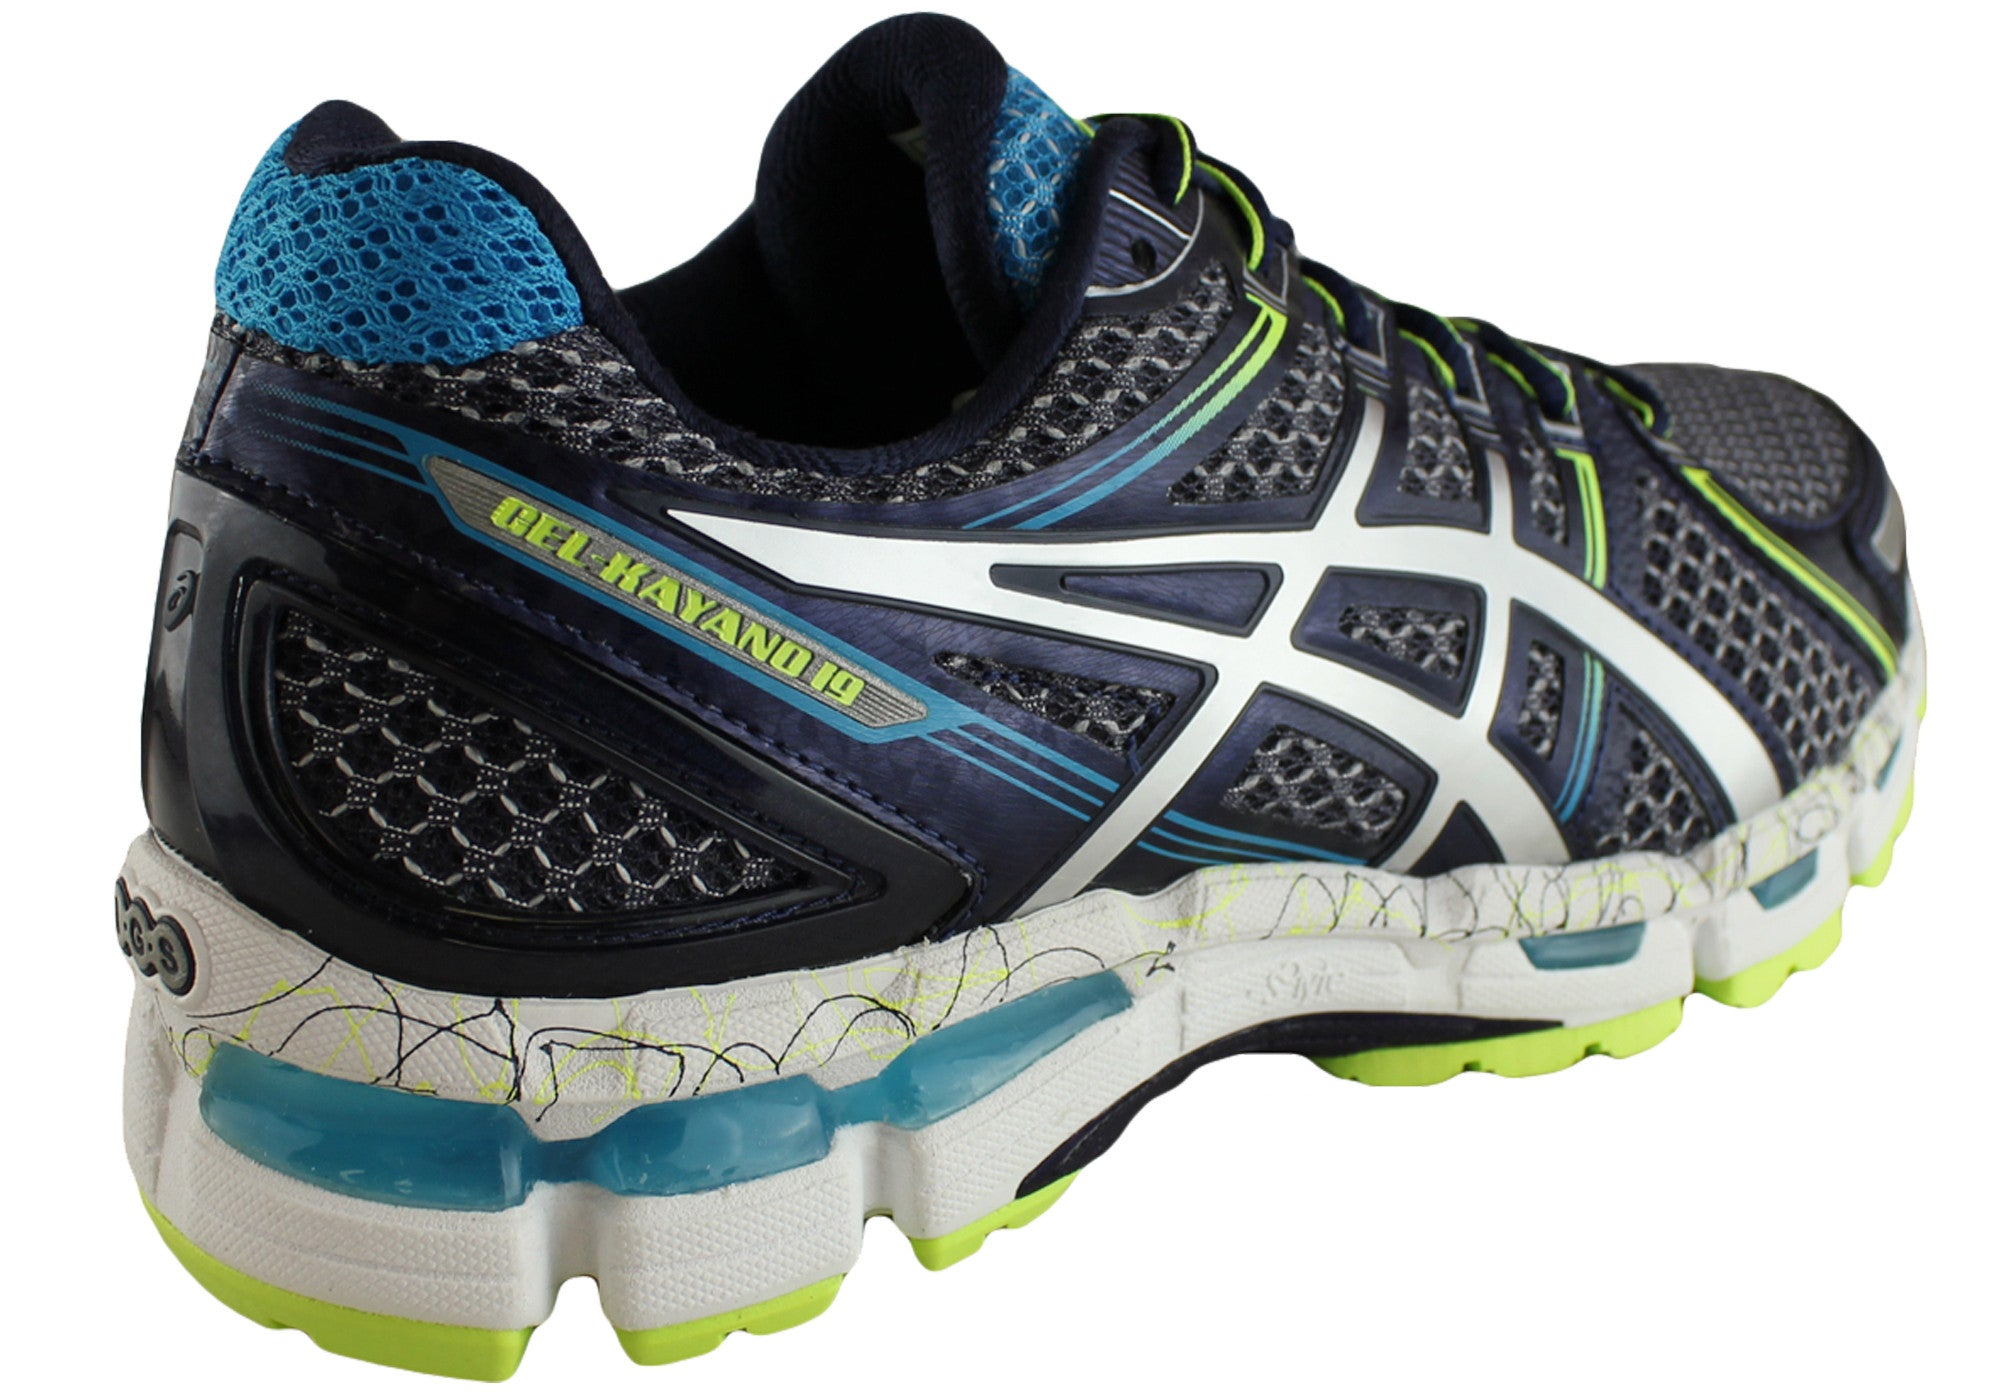 Asics Gel Kayano 19 Mens Premium Running Shoes